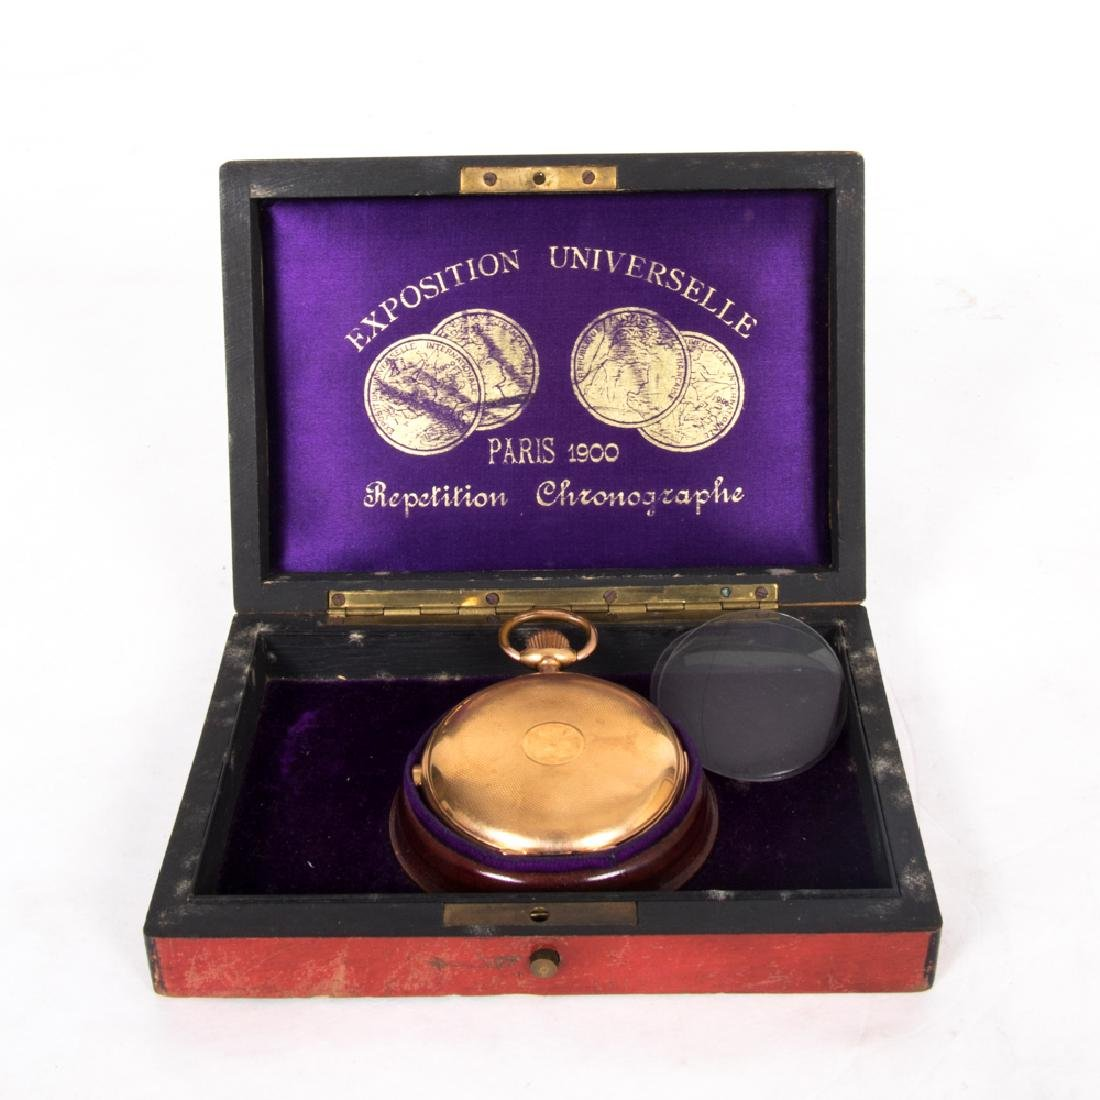 An 18kt. Yellow Gold Repeating Chronograph Pocket Watch